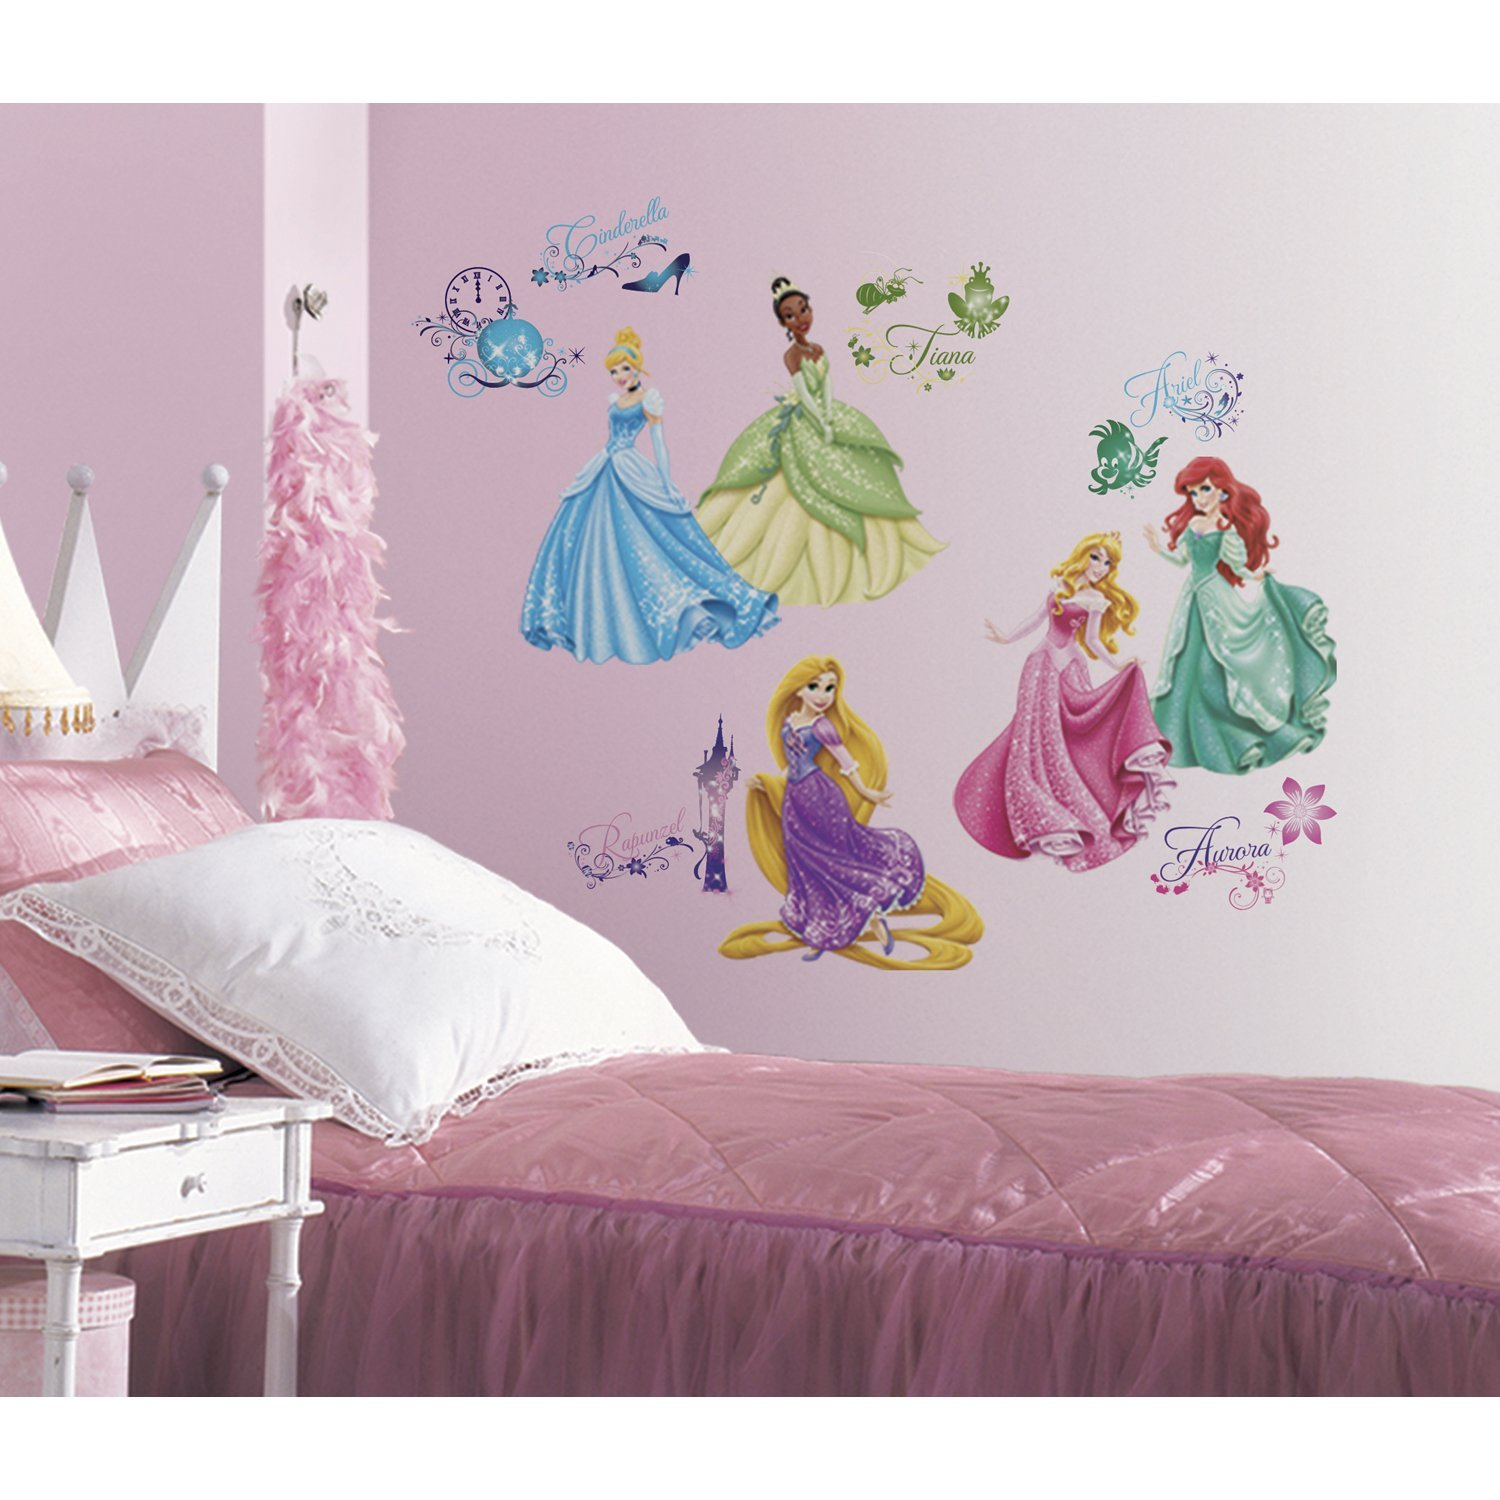 Disney princess royal debut peel and stick wall decals for Stickers para dormitorios